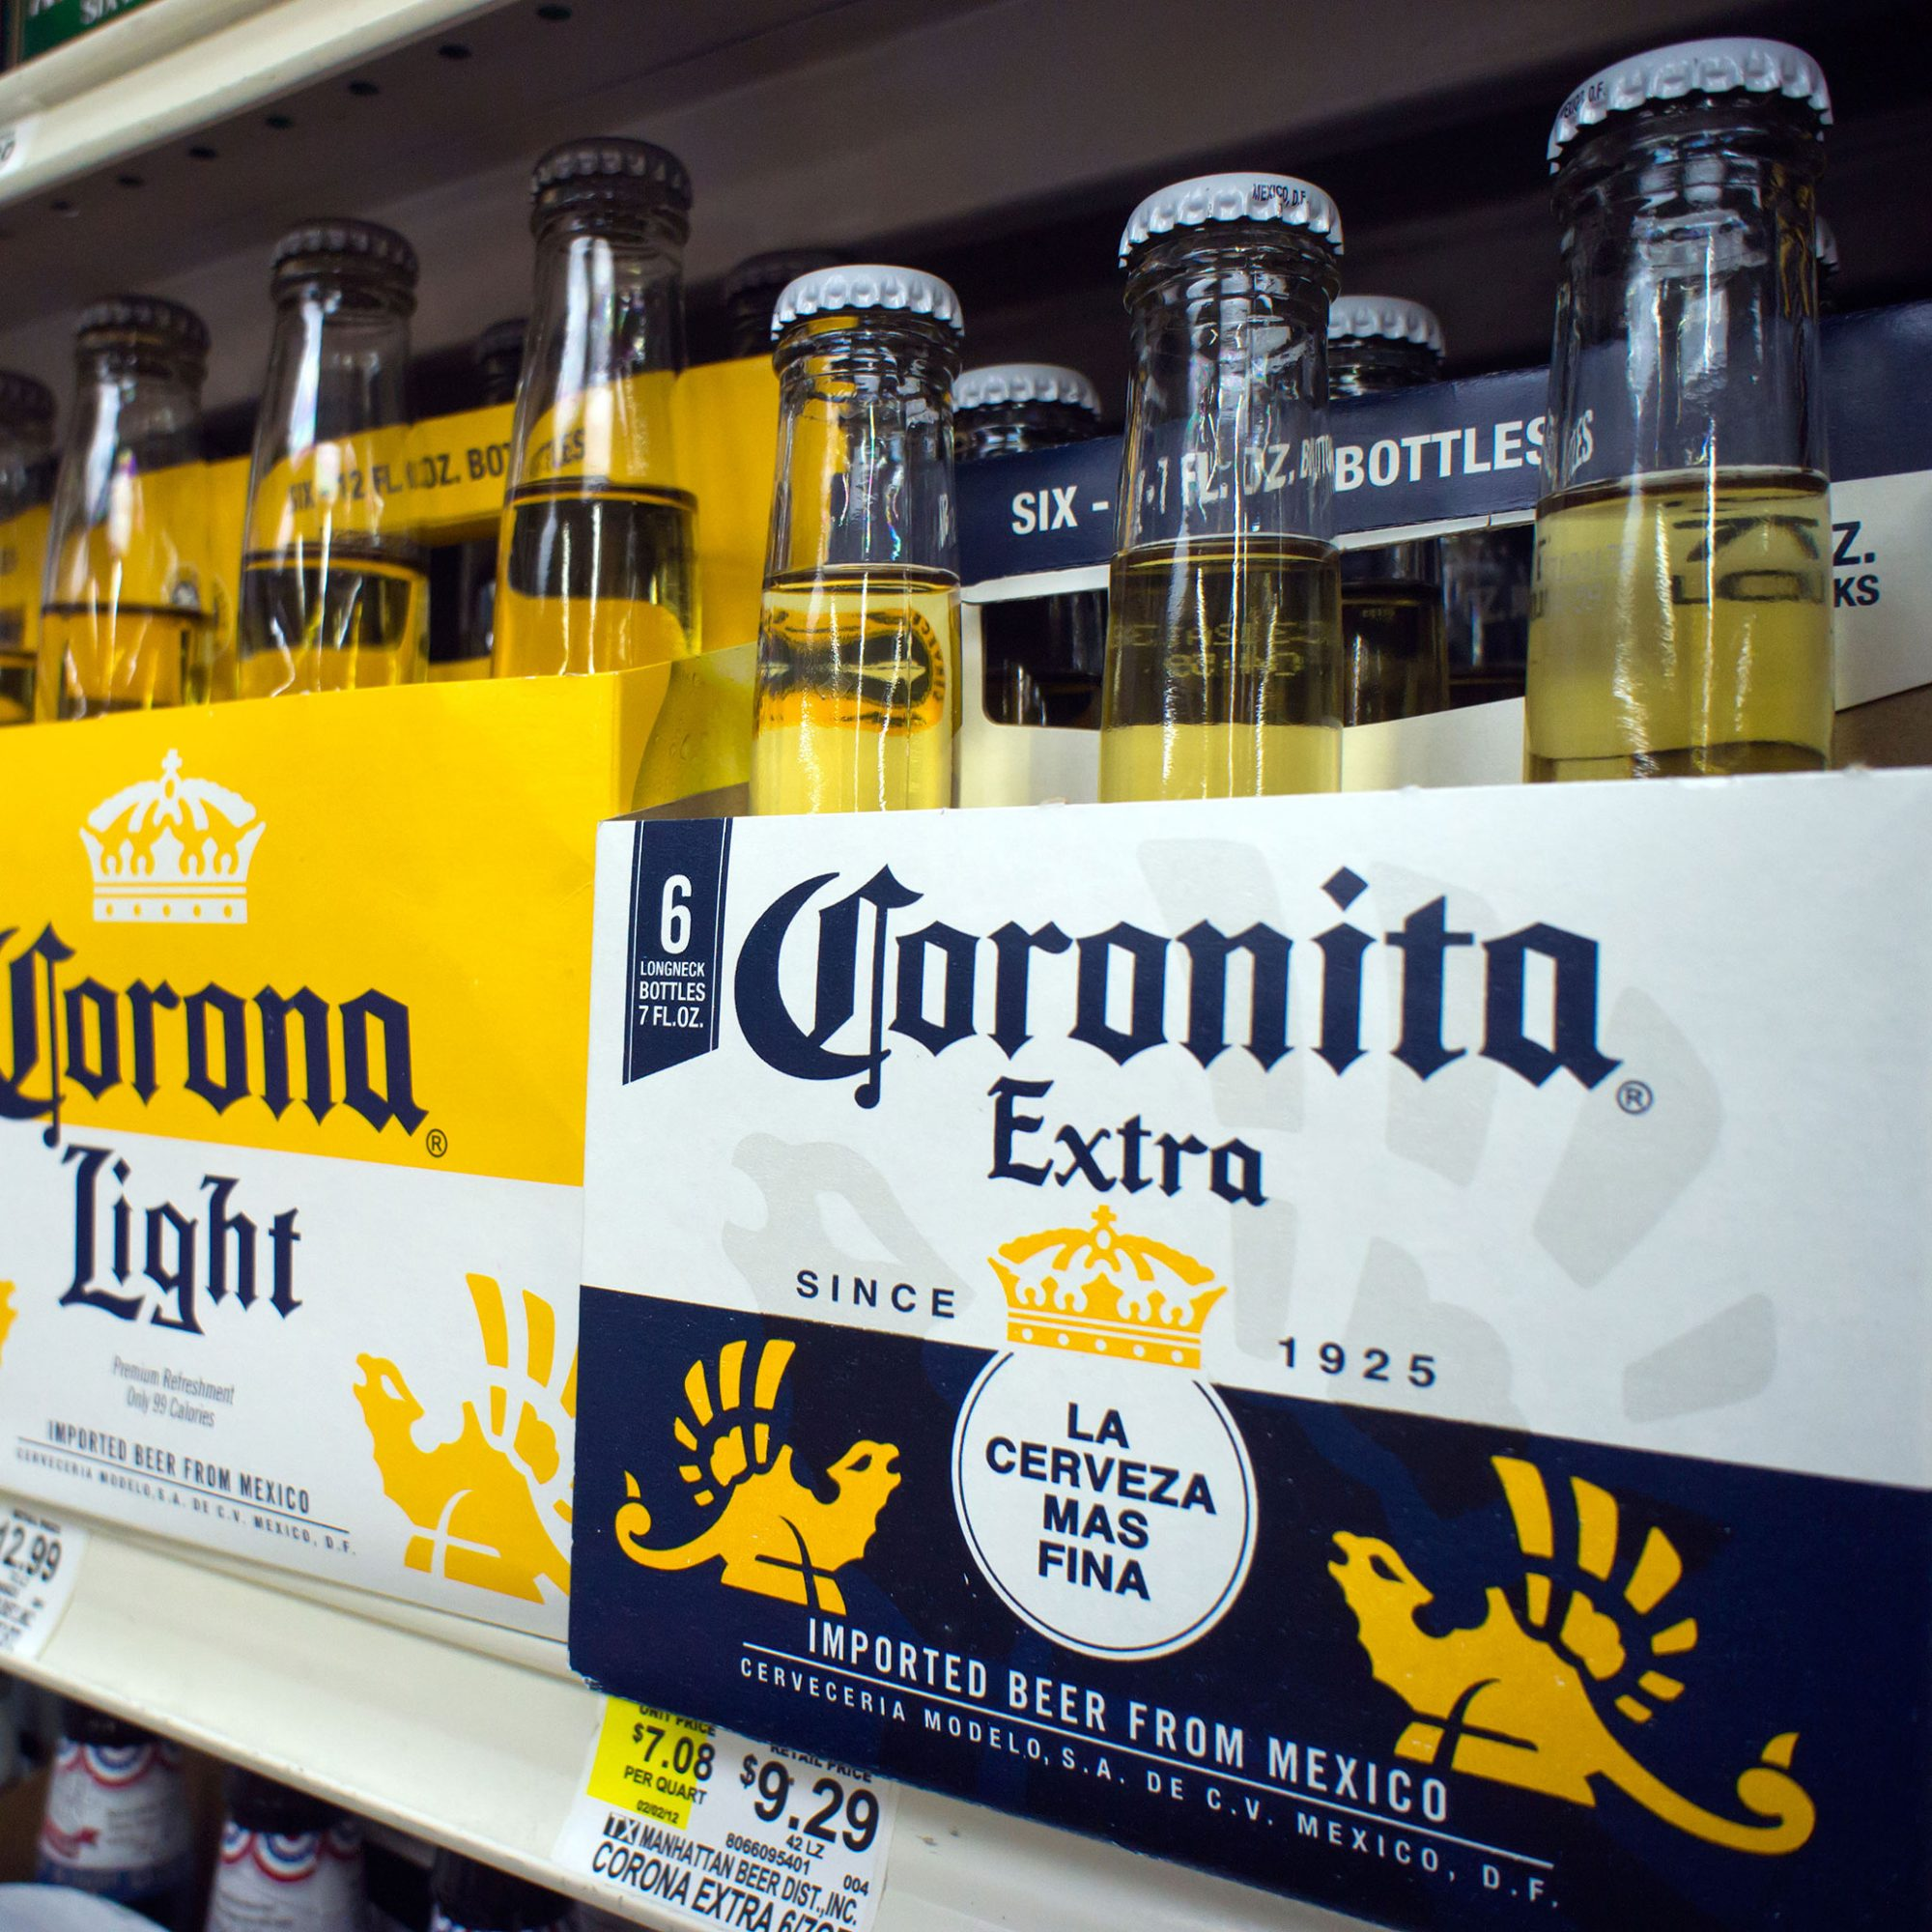 Two-Thirds of America's Imported Beer Is Mexican